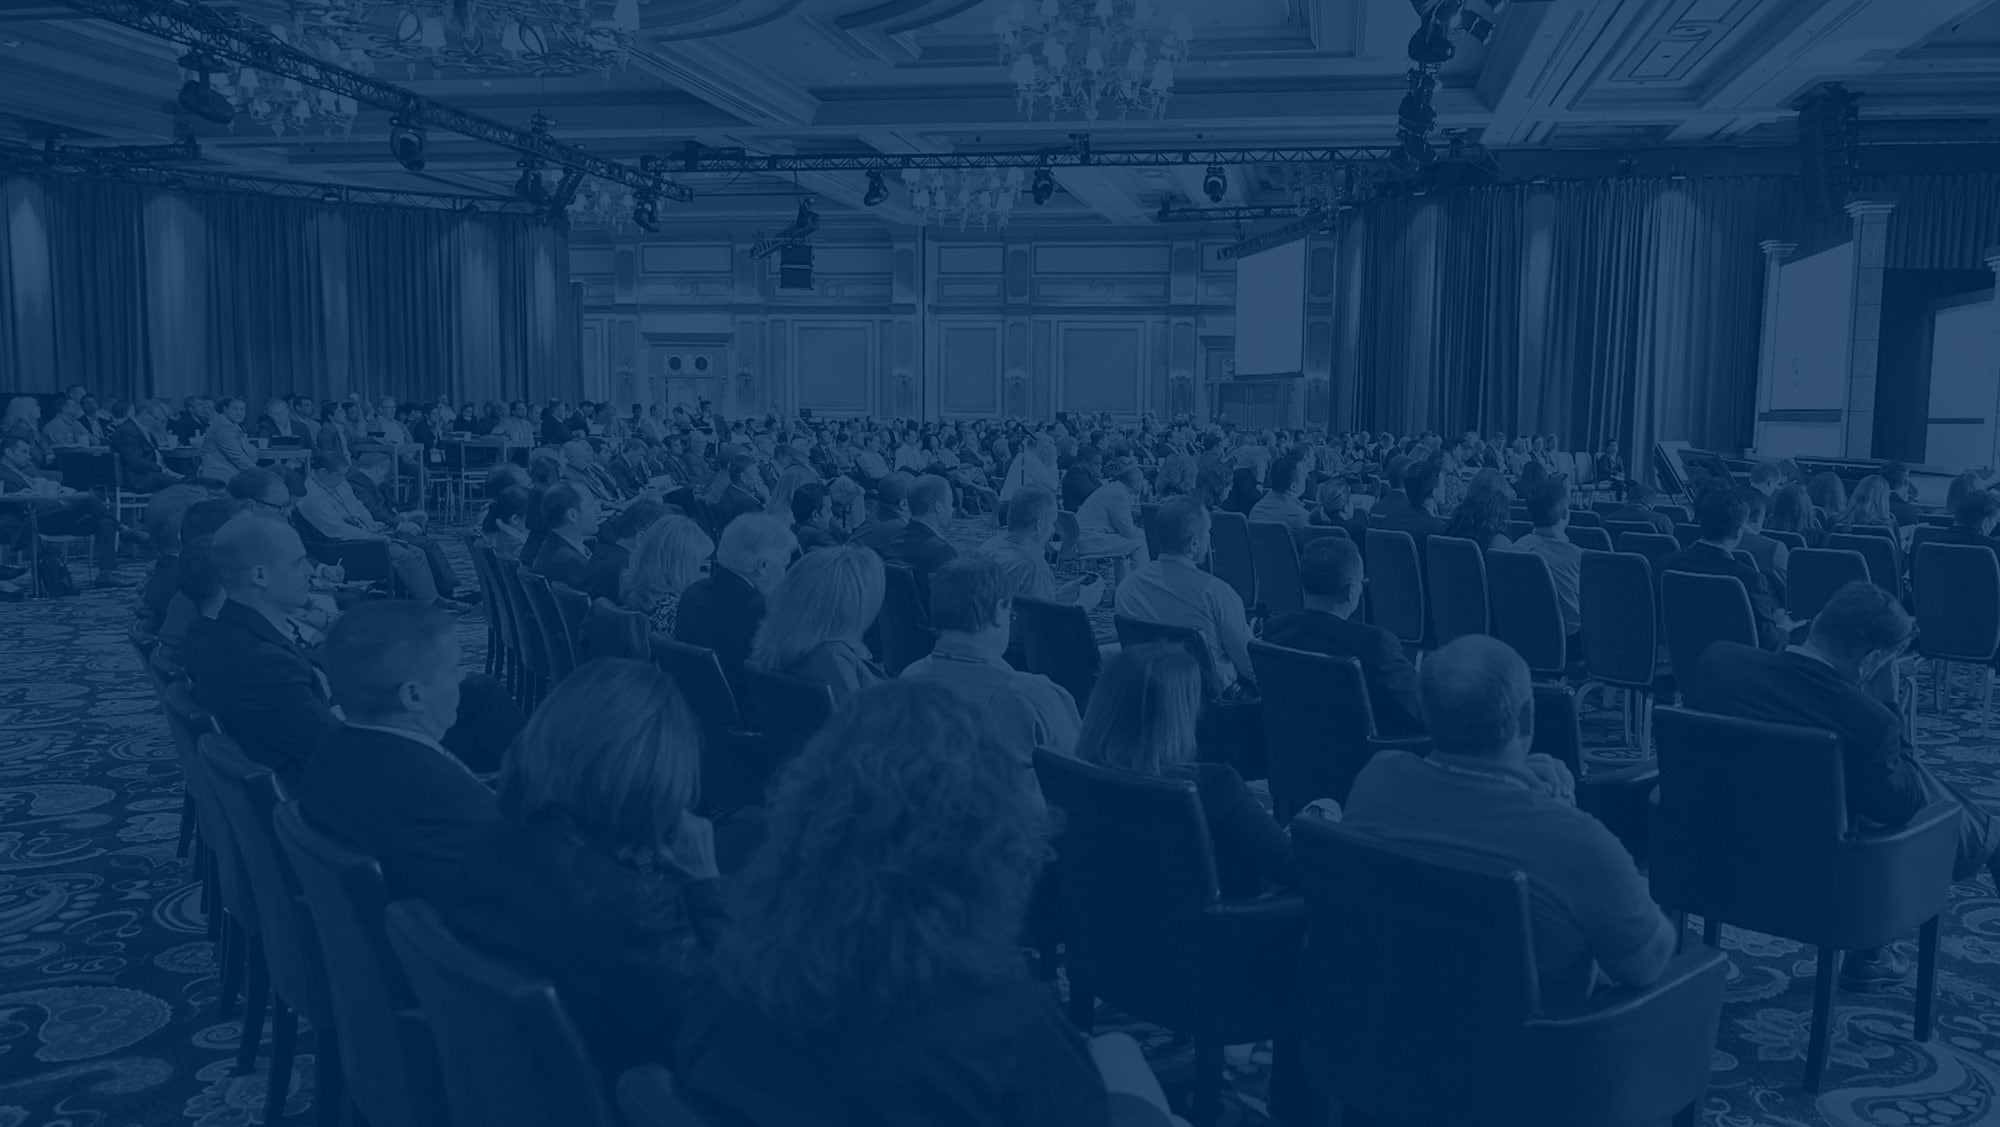 PBLS2015 Background - large navy audience main stage